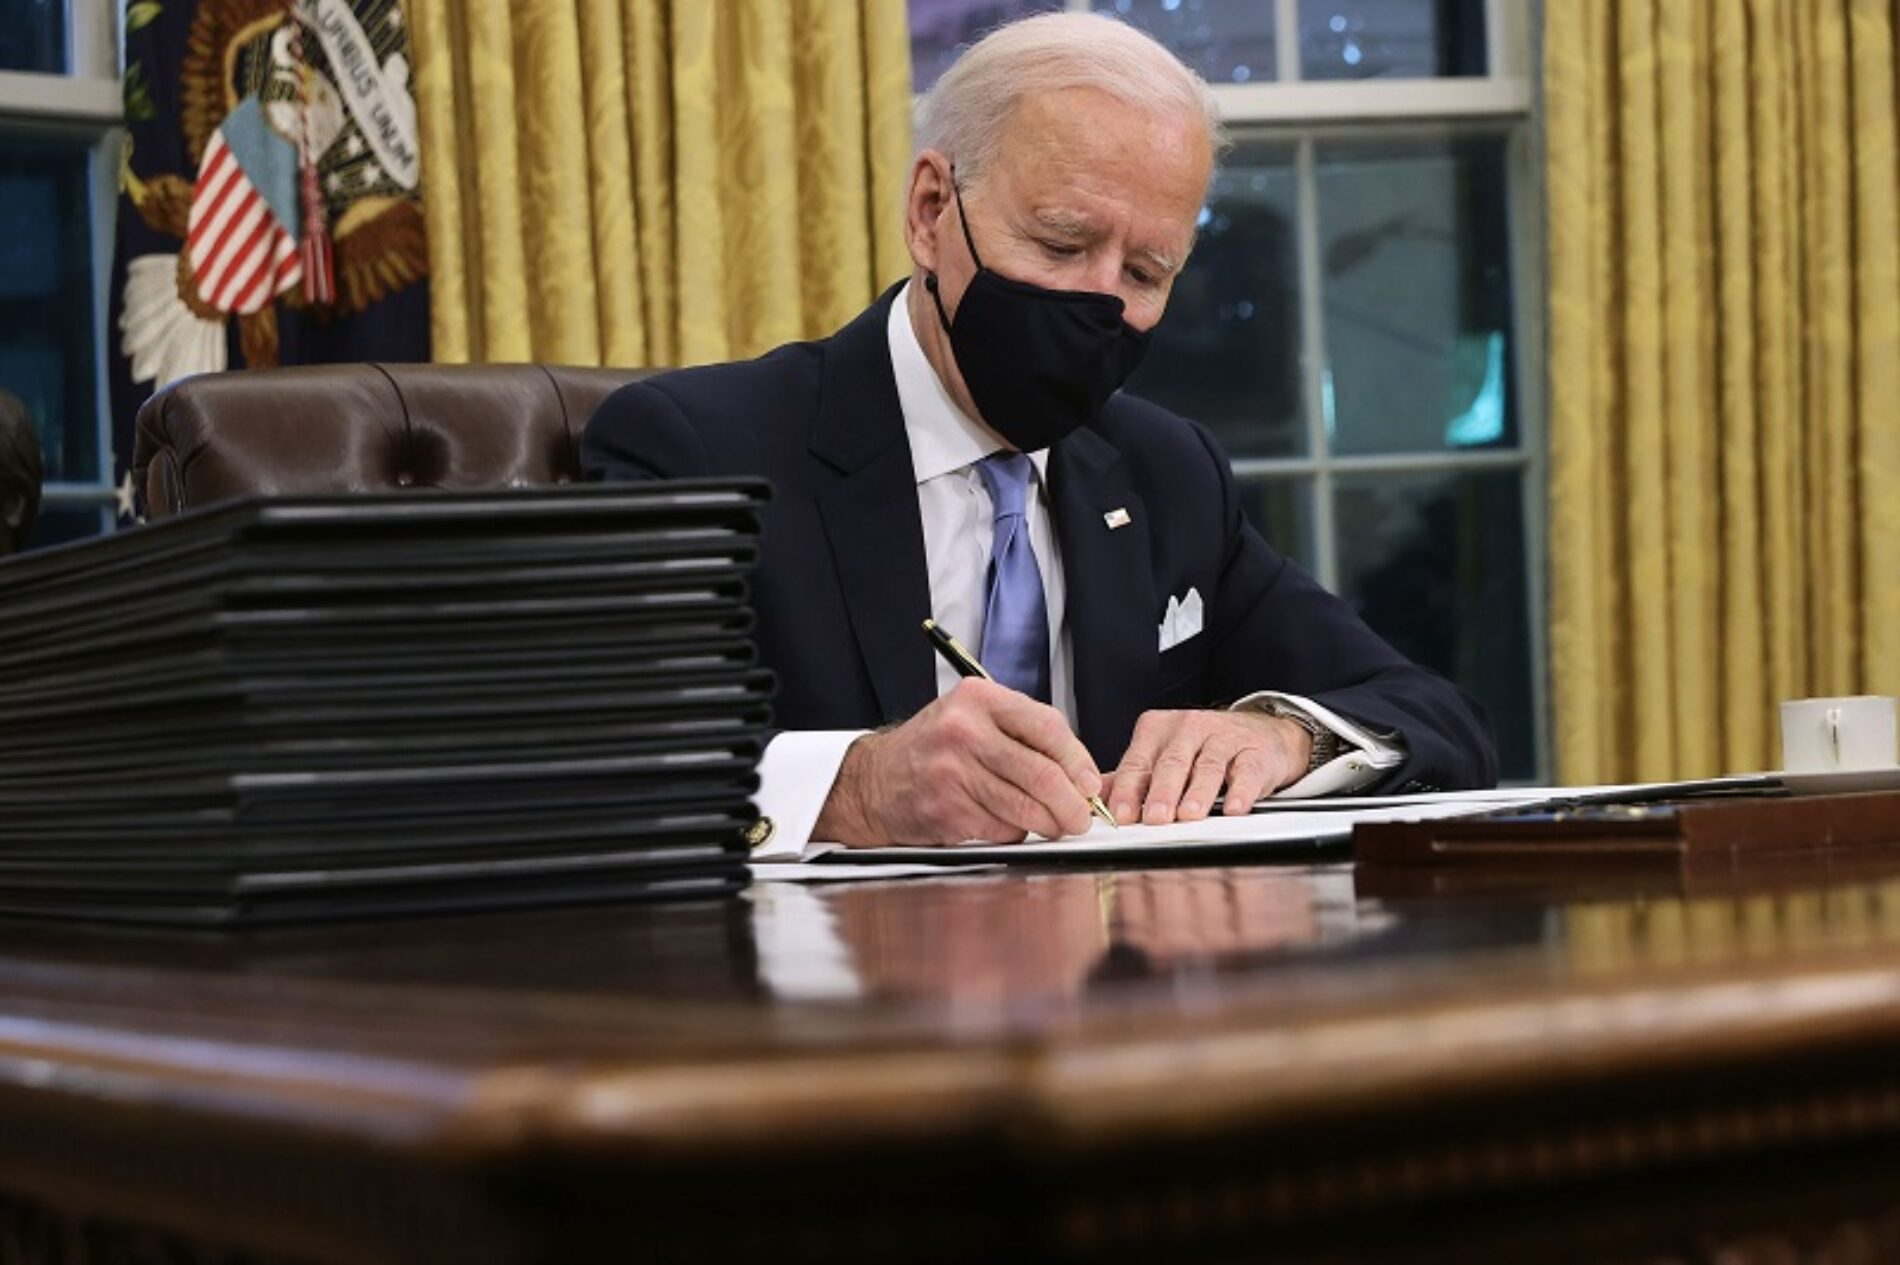 President Joe Biden Starts First Day Of Work By Signing Order Against Anti-LGBTQ+ Discrimination In America